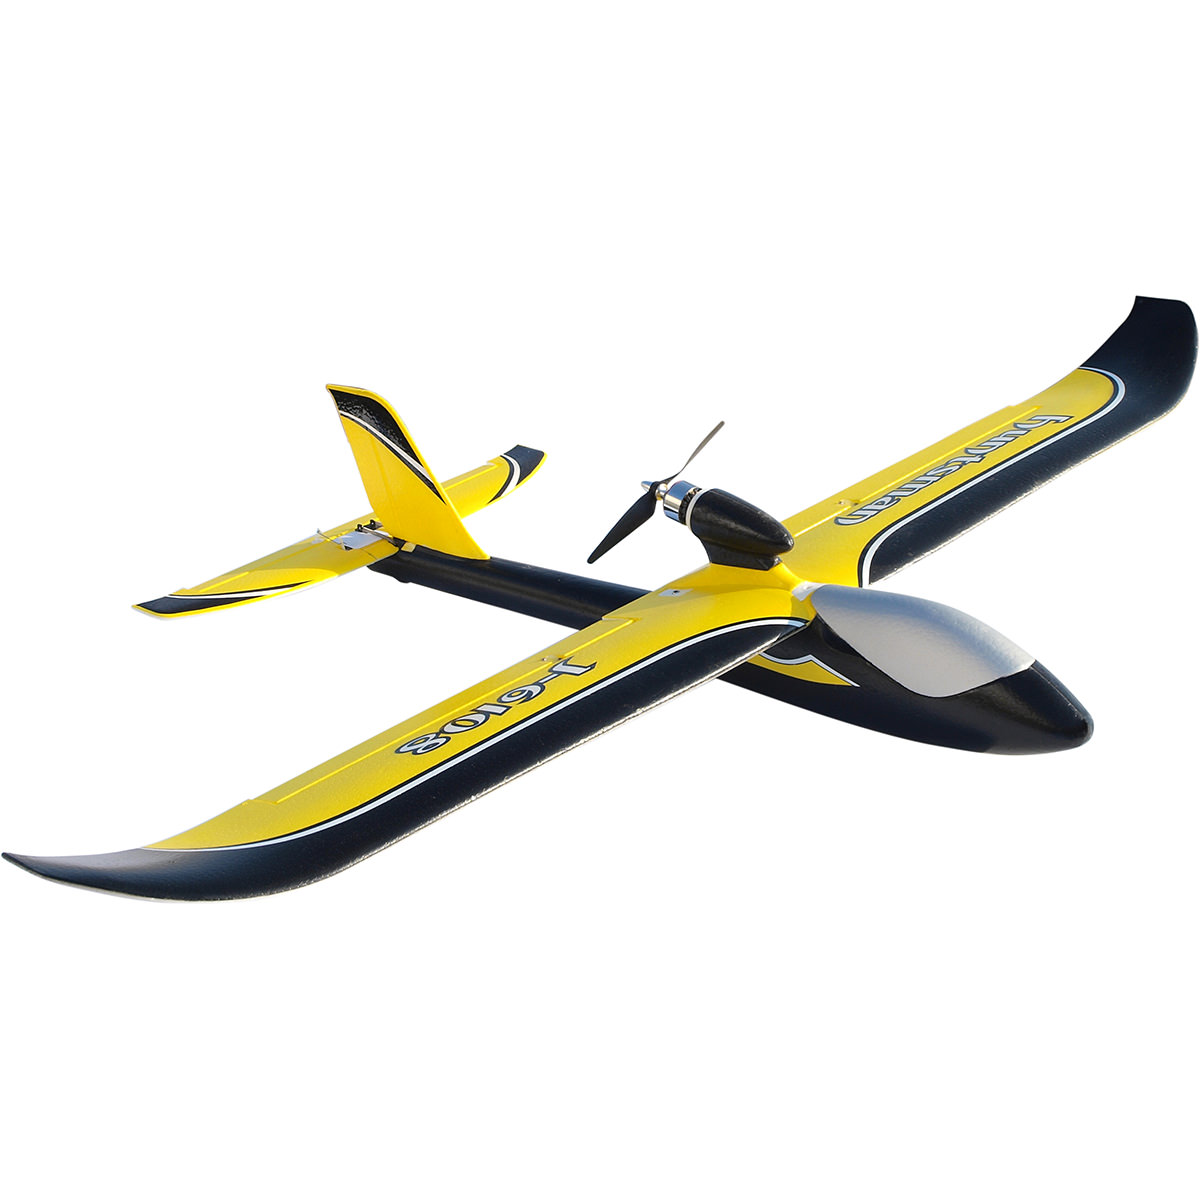 rtf gliders with Joysway 6108y Huntsman V2 Yellow Rc Glider on P233247 in addition Rc Paraglider together with Dr Mad Thrust 120mm 12 Blade Alloy Edf 650kv Motor 6300 Watt 12s as well 1166840378 furthermore 1966 Ford F 100 For Scx10 Trail Honcho 12 3 313mm Wheelbase 1.